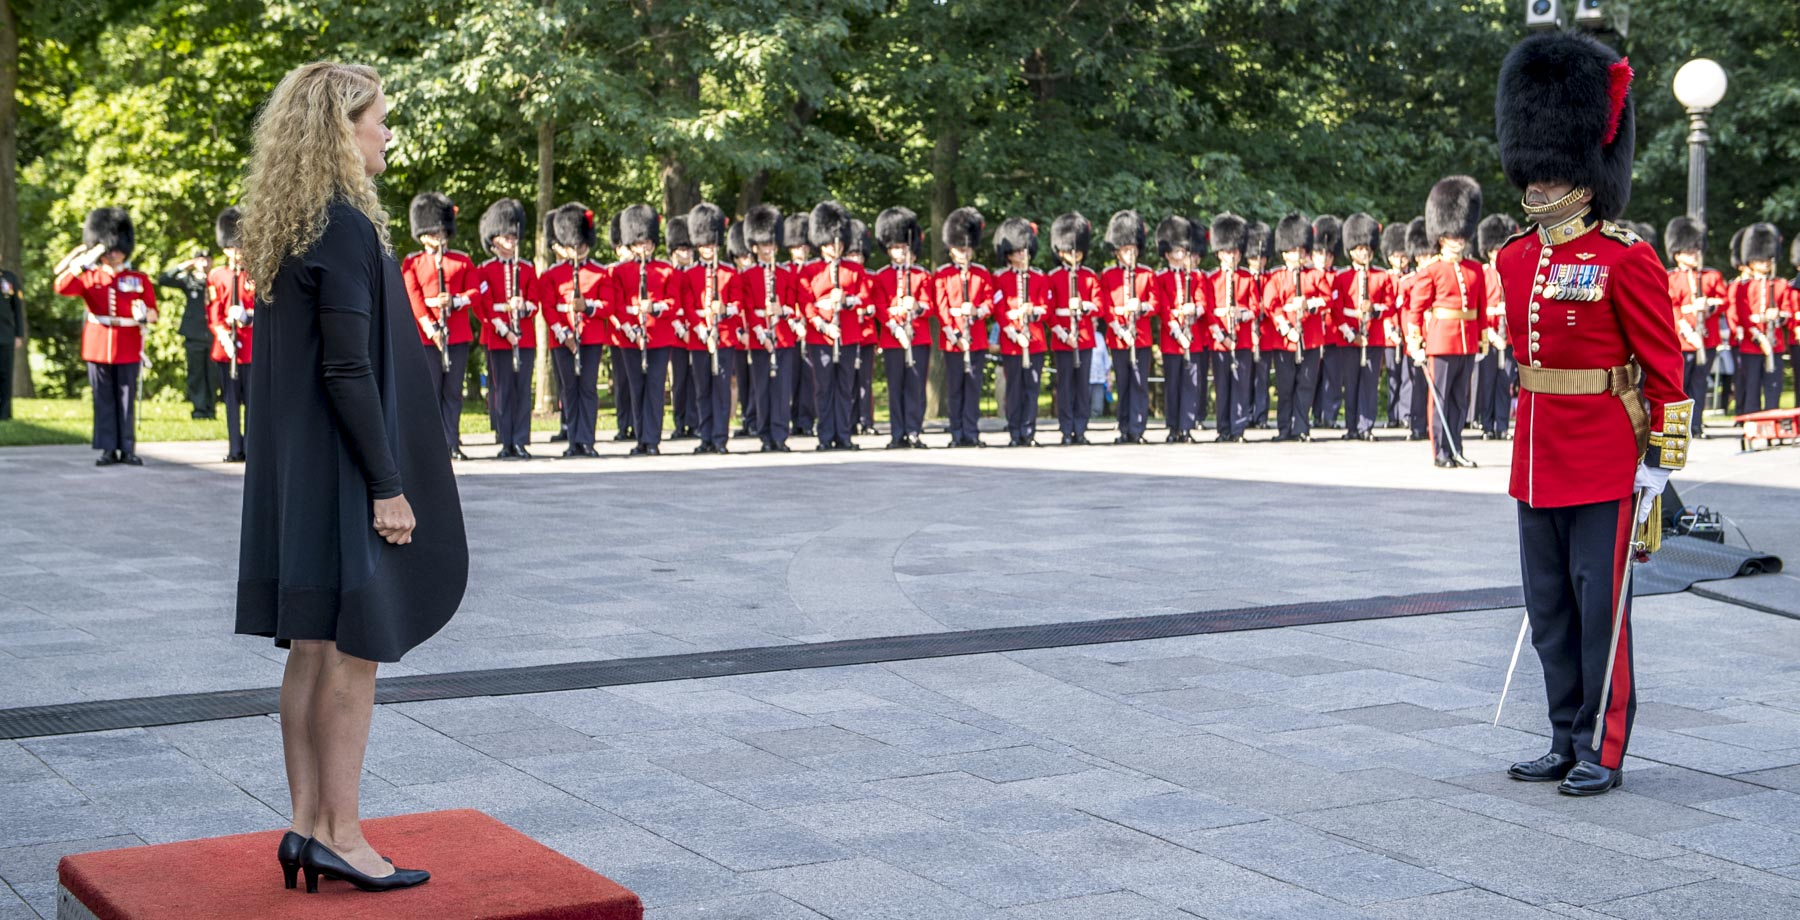 Upon her arrival, the Governor General received the vice-regal salute.